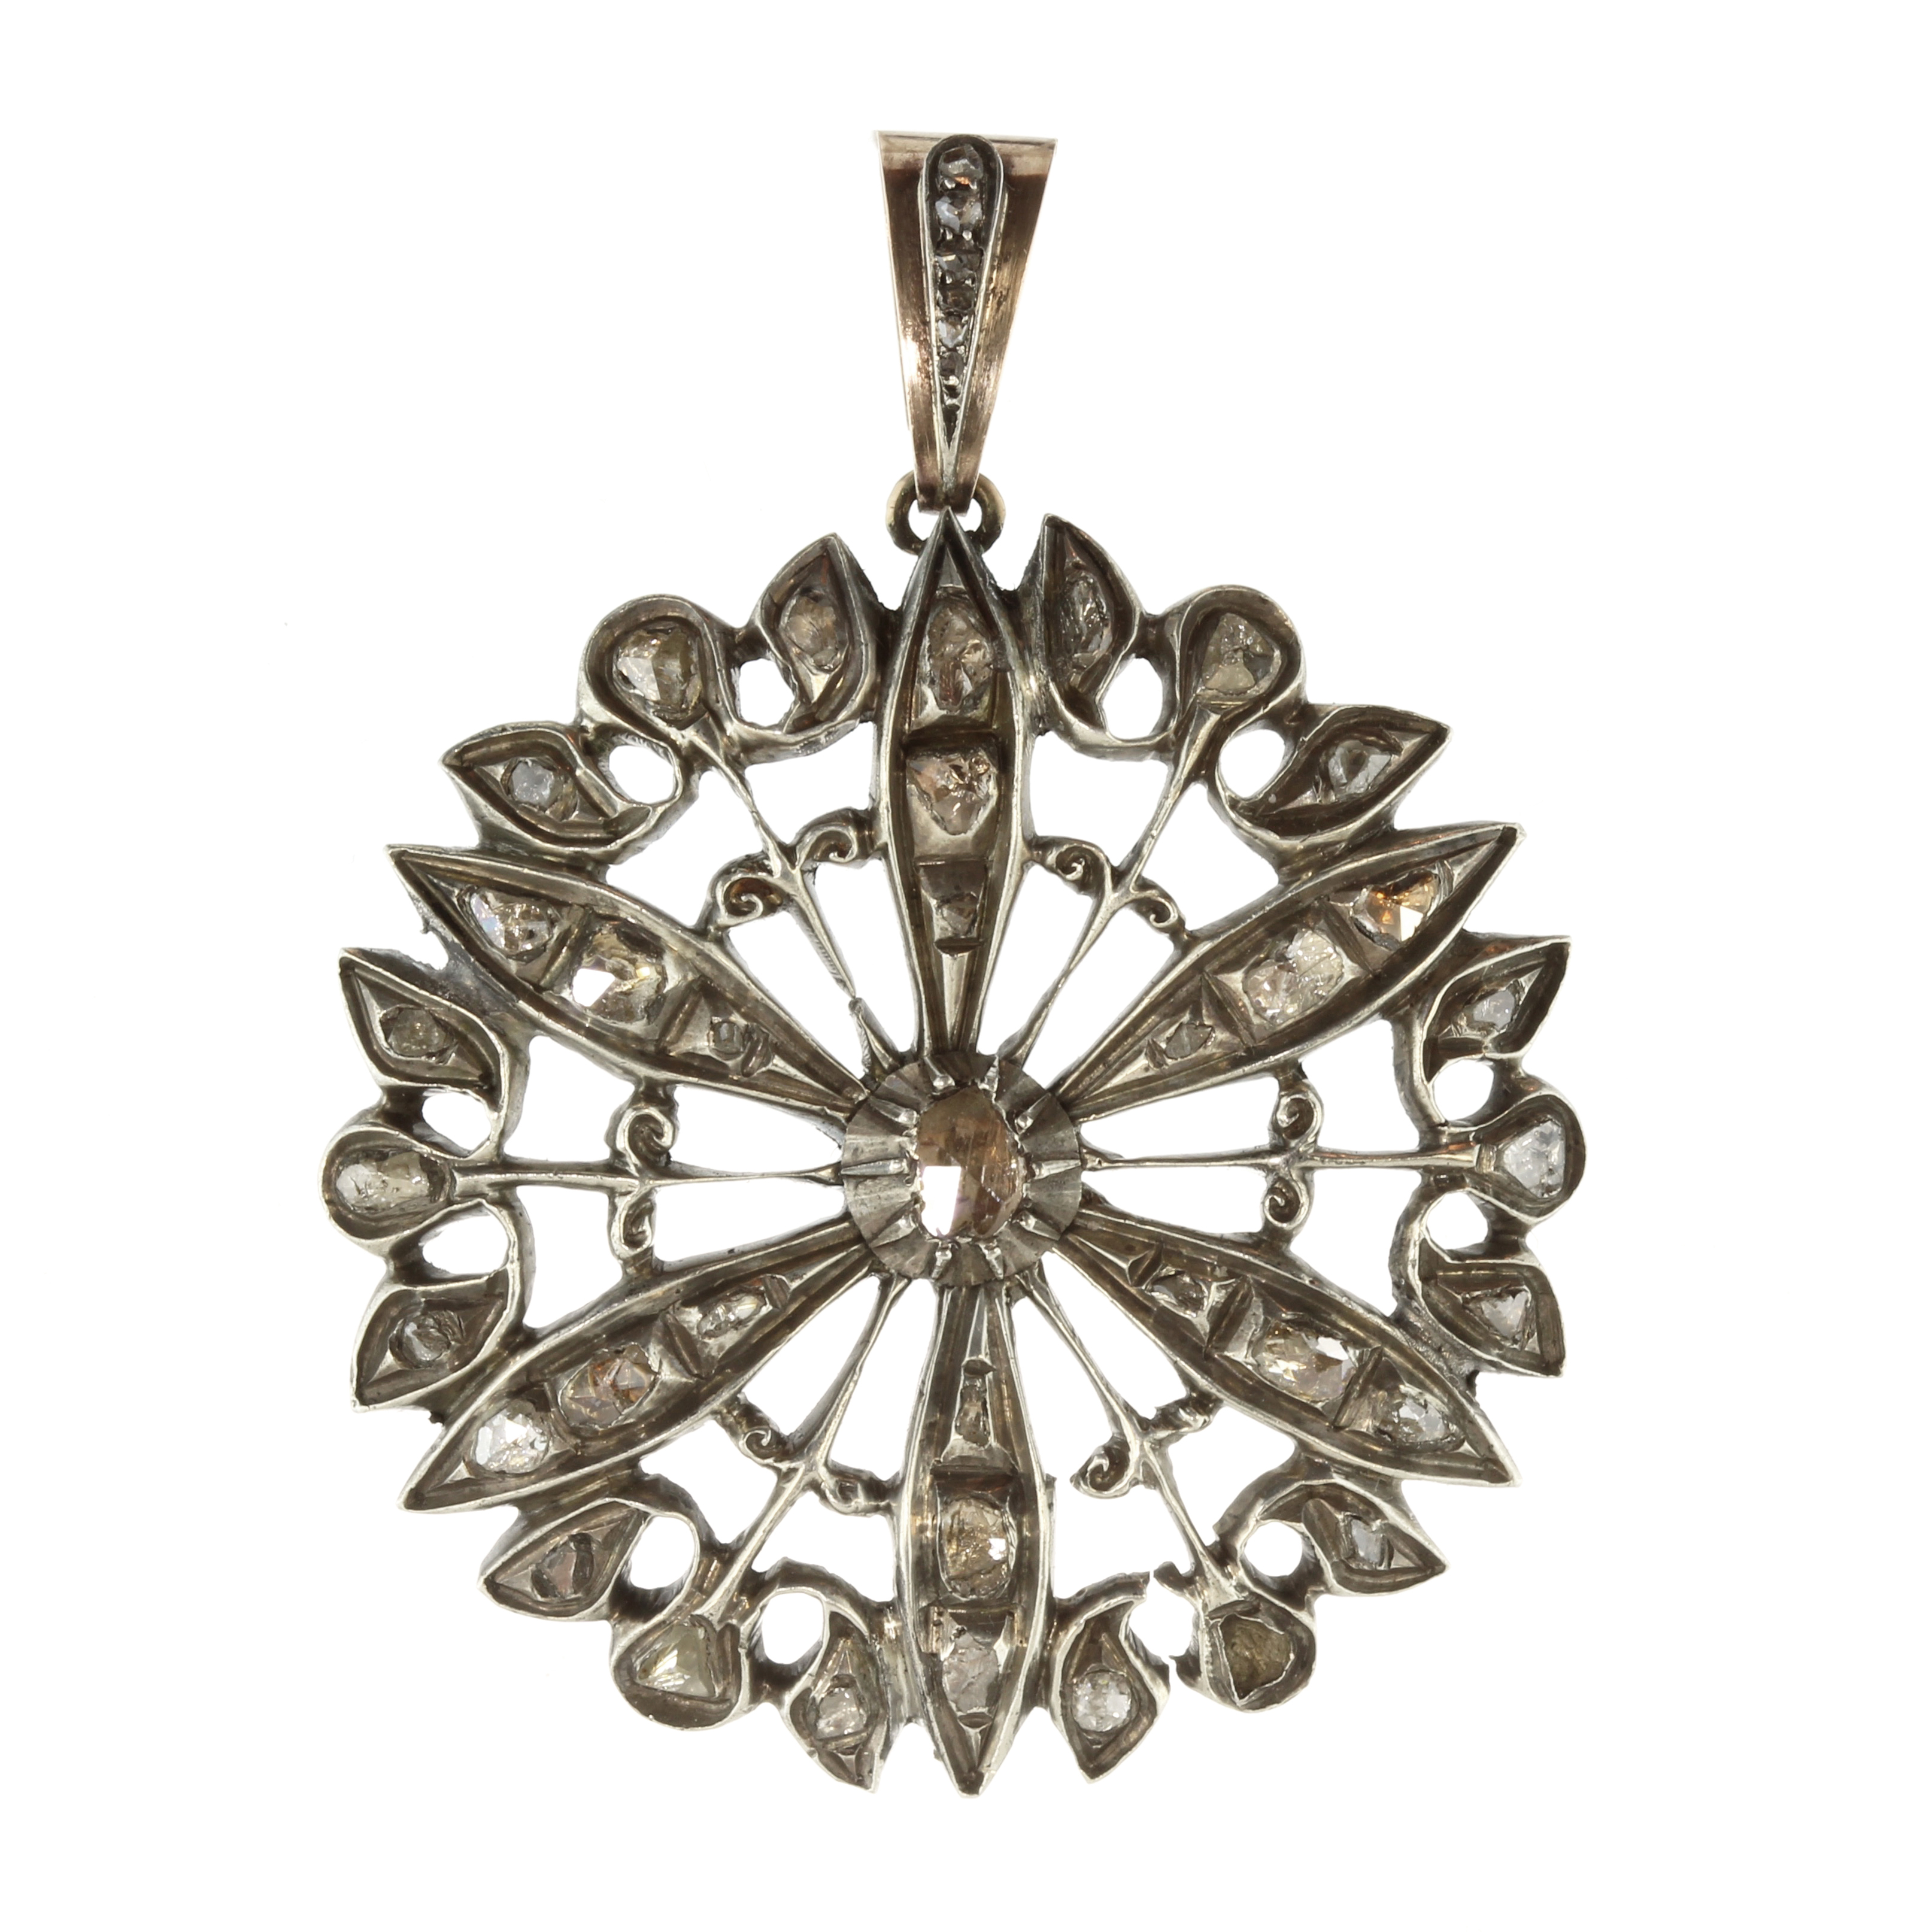 Los 17 - A large diamond flower pendant in gold and silver designed as a flower motif, set with a central